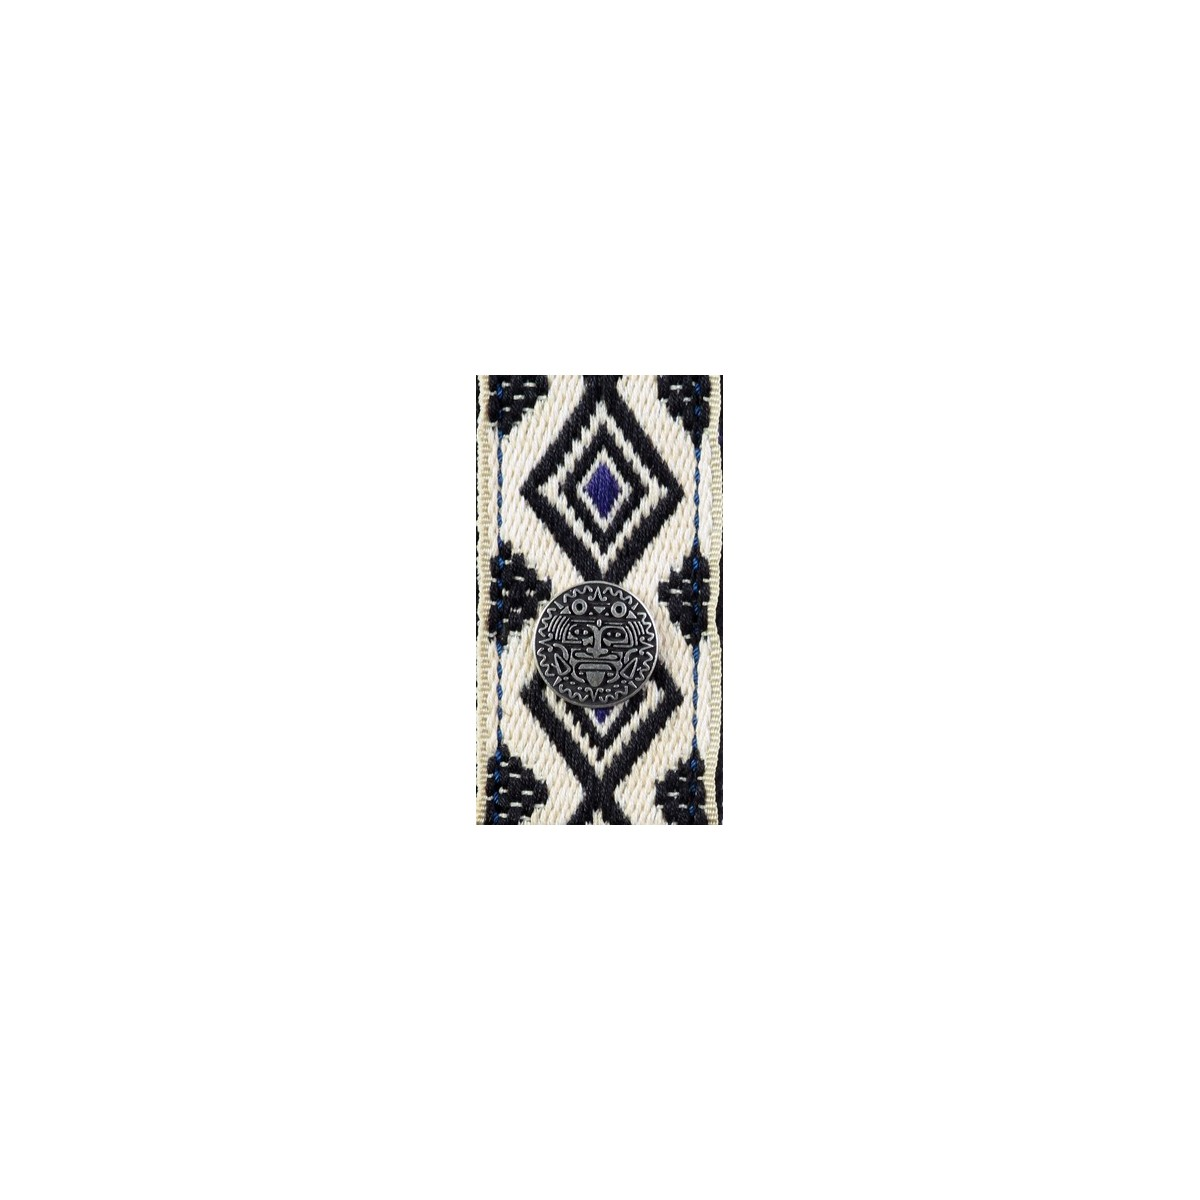 Tonepros Avt2g Wraparound Bridge Gibson Gold